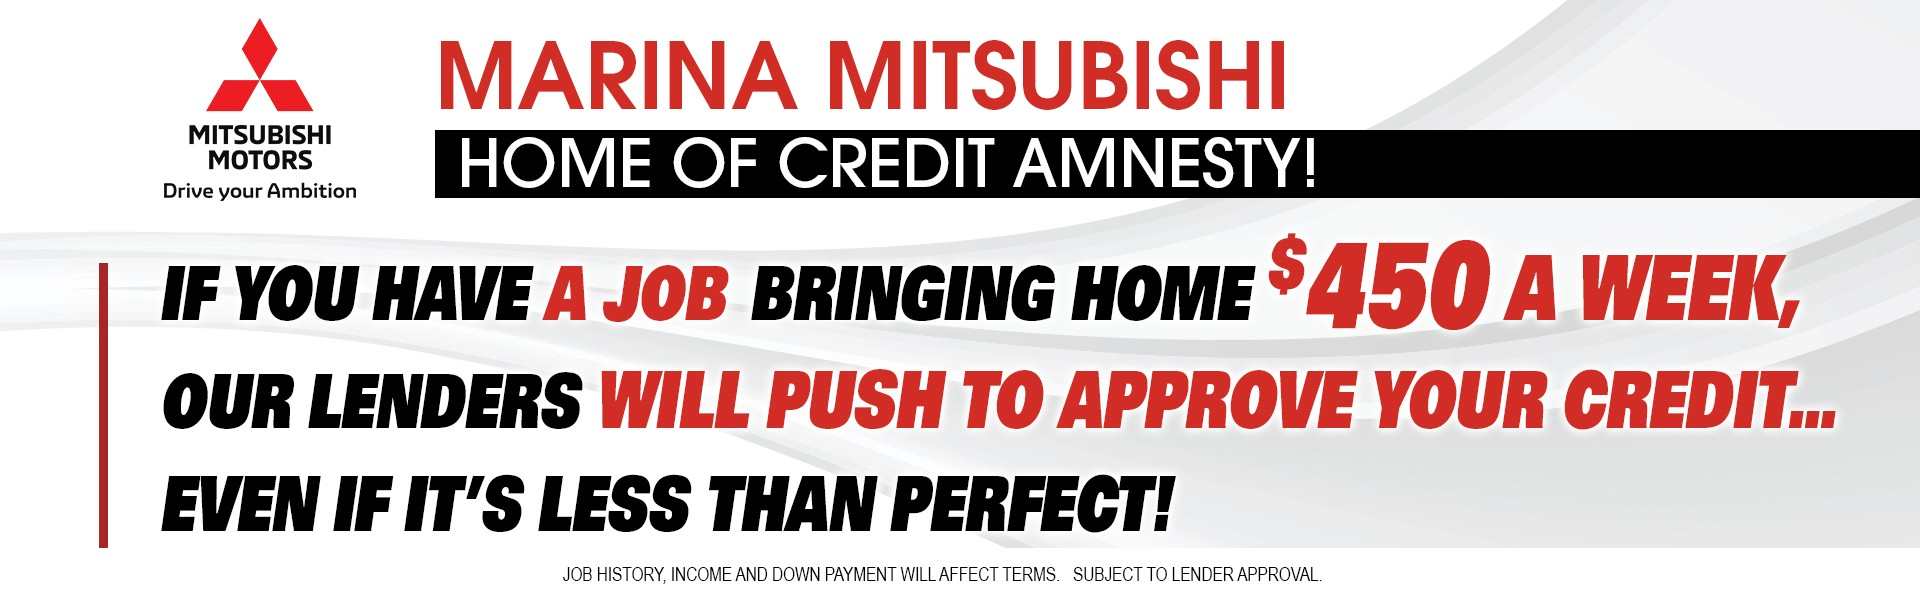 Marina Mitsubishi Home of Credit Amnesty